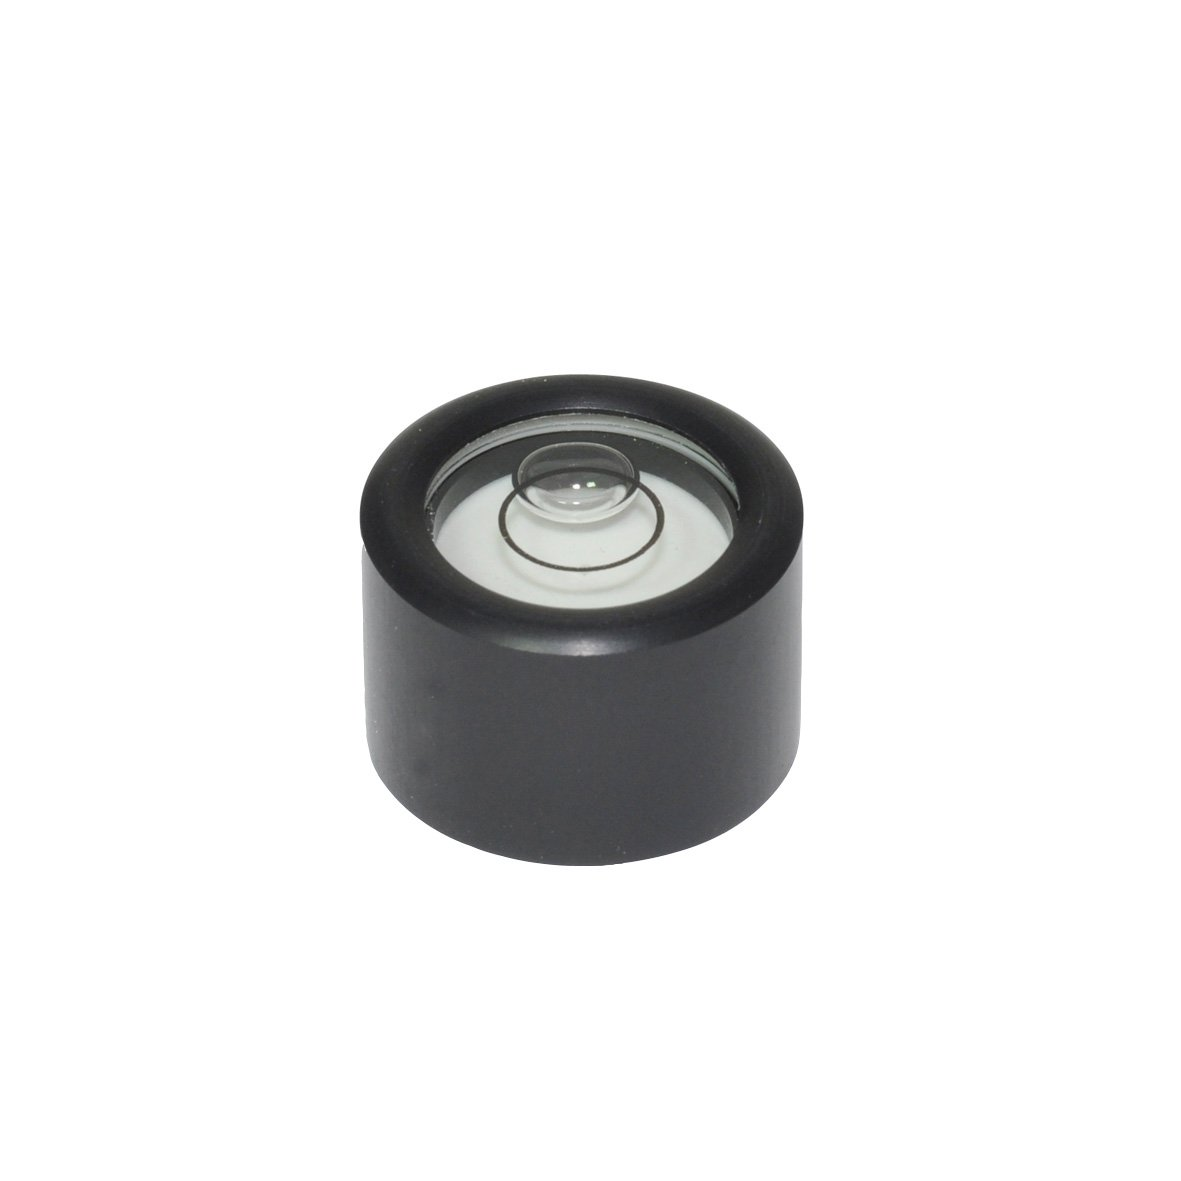 J.W 2280-ALS-17-K-30 17mm Winco GN2280 Aluminum Adjustable Bulls-Eye Level with Mounting Threads Inc.